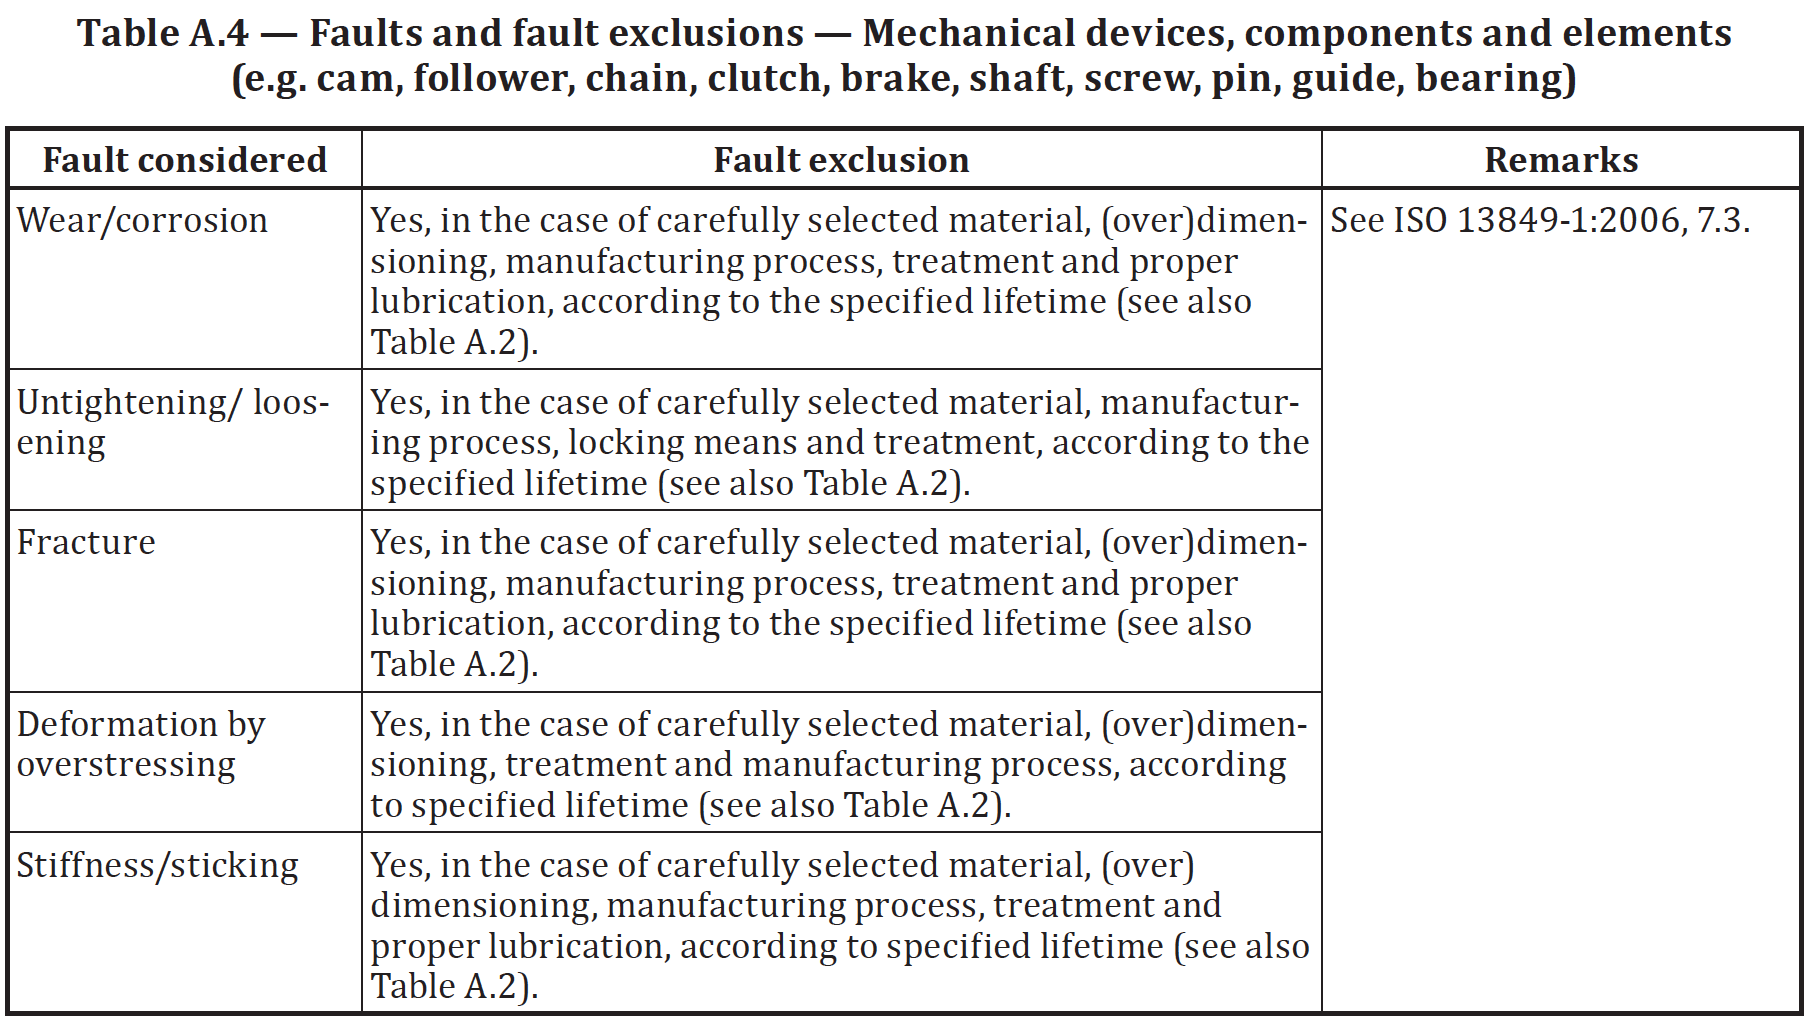 Mechanical fault list from ISO 13849-2